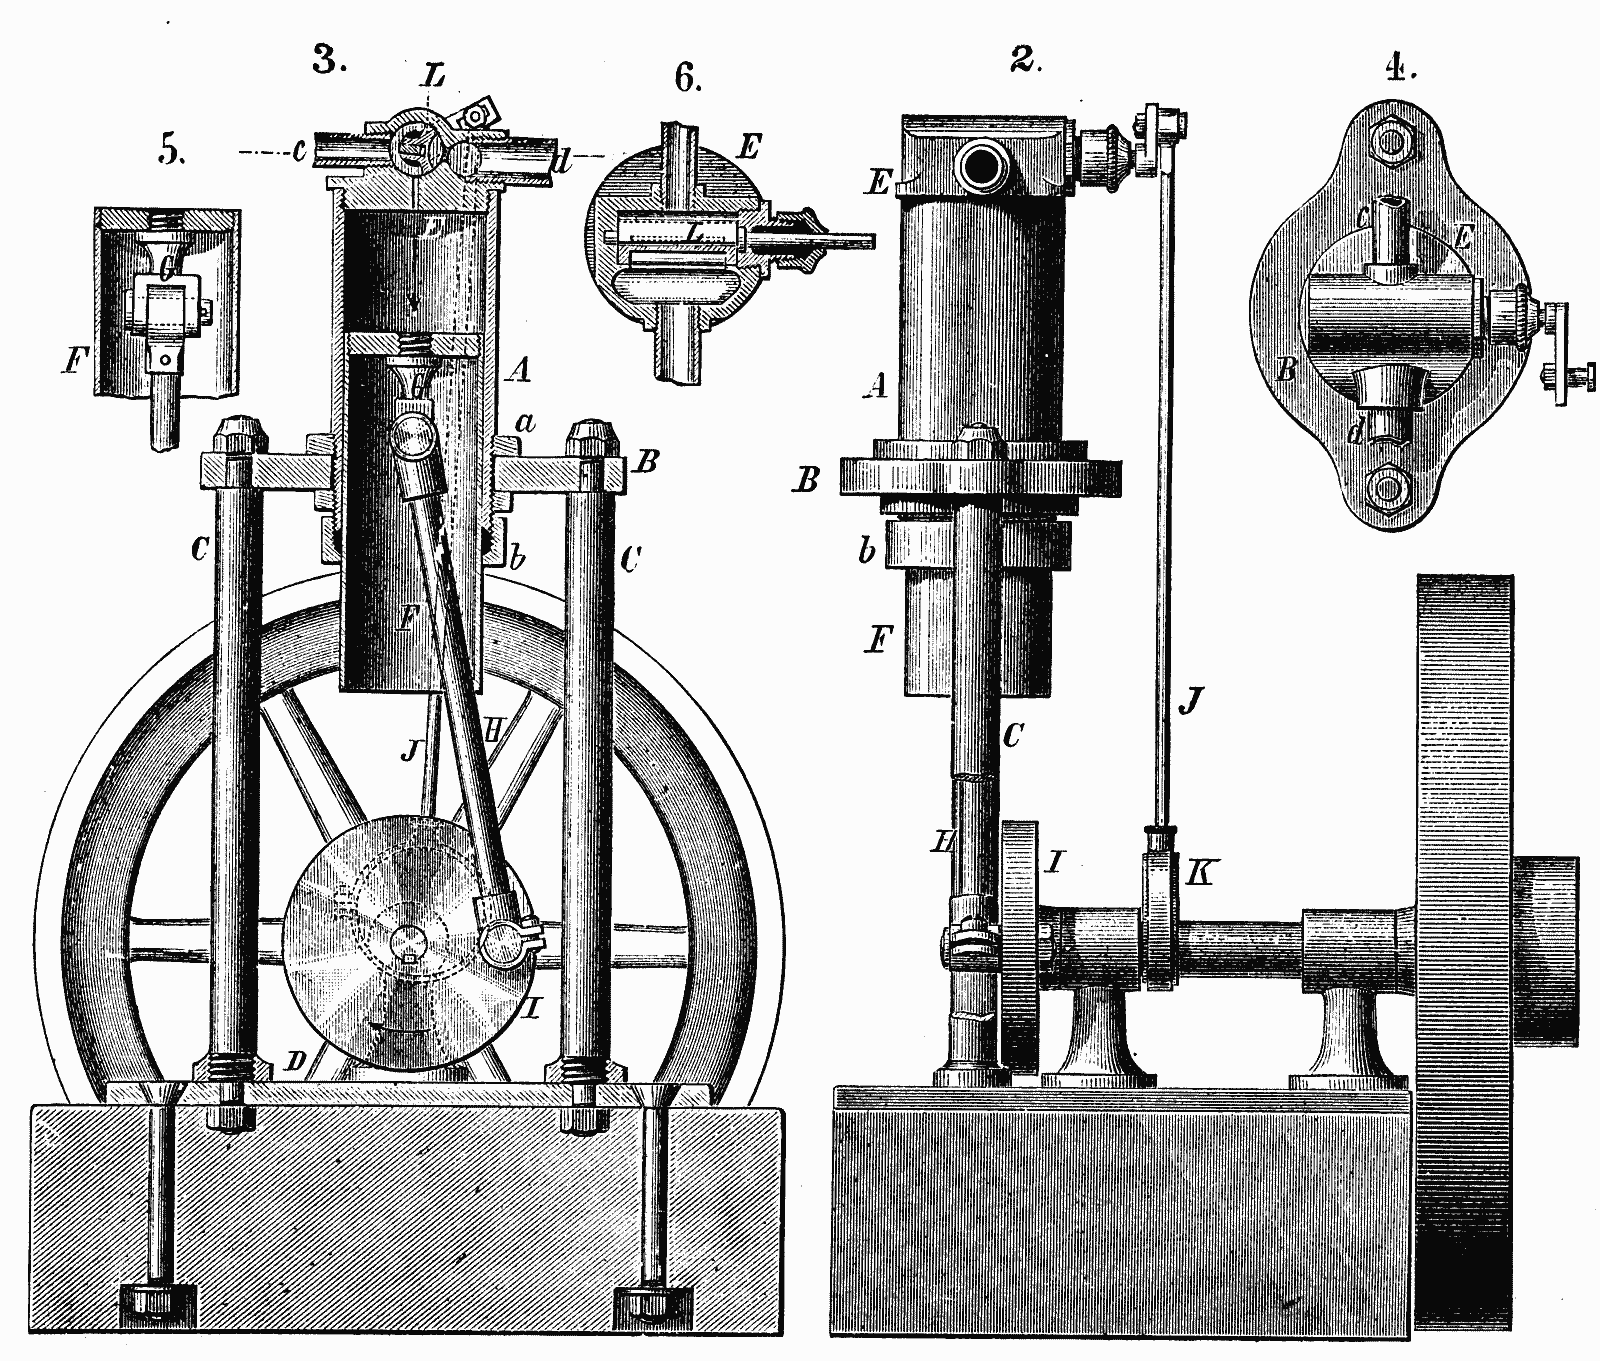 The Project Gutenberg Ebook Of Scientific American December 18 1880 Pin Circuit Die Cut Machine Cake On Pinterest Image16